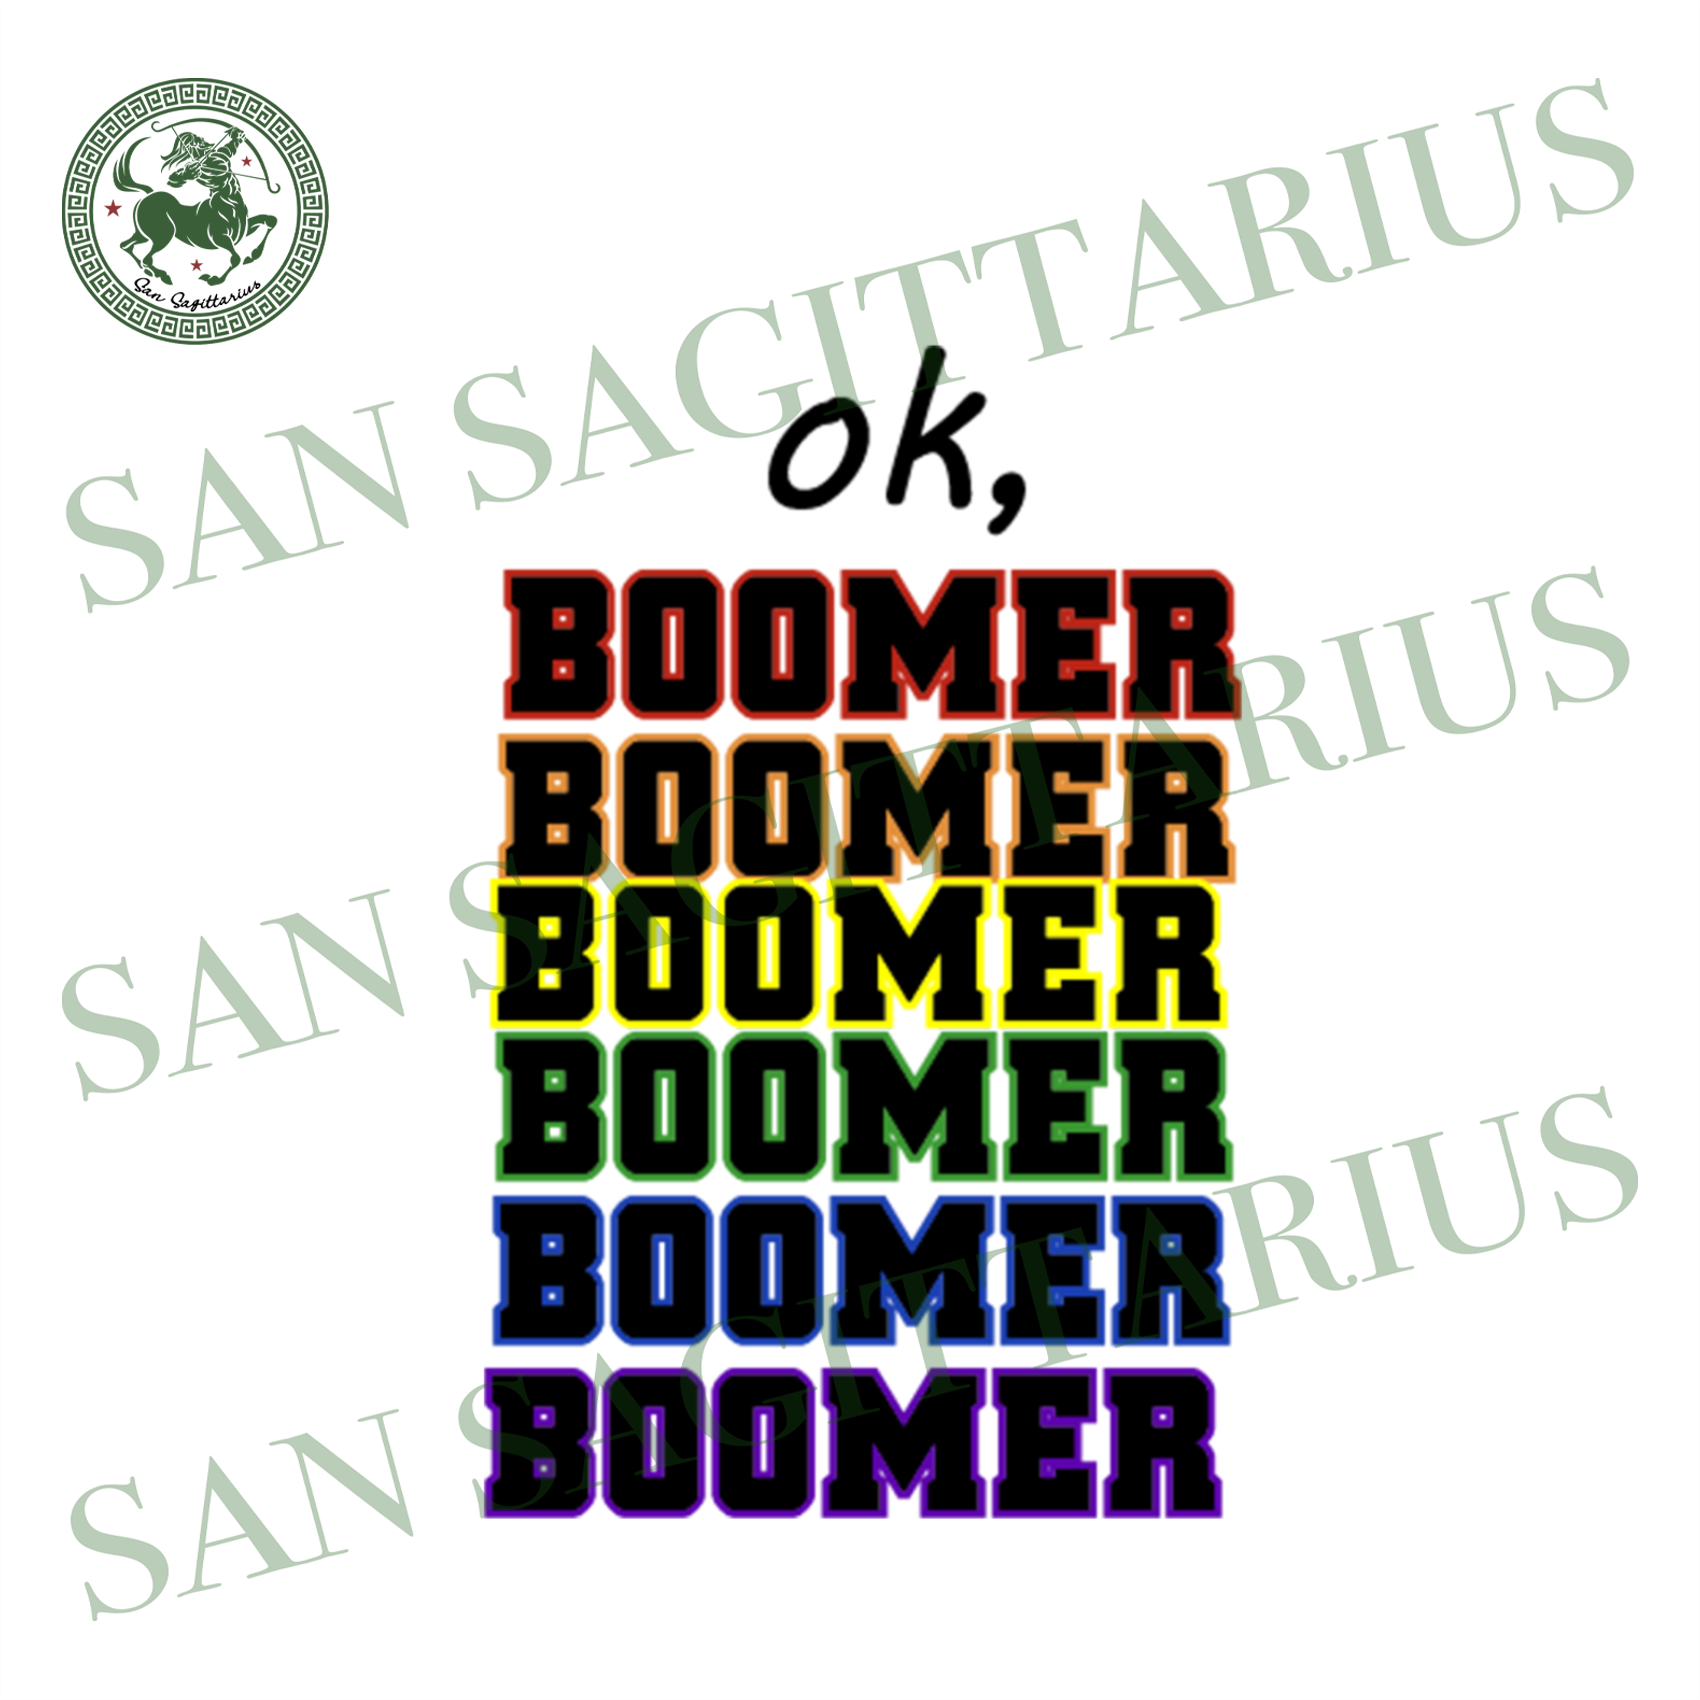 OK Boomer Svg, Trending Svg, Okay Svg, Boomer Svg, Funny Quotes Svg, Shirt Design, Mirror Word, Baby Boomer Svg, Mirror Alphabet, Stacked Font Svg, Ok Boomer Mirror Word, Word Design Svg, Sar